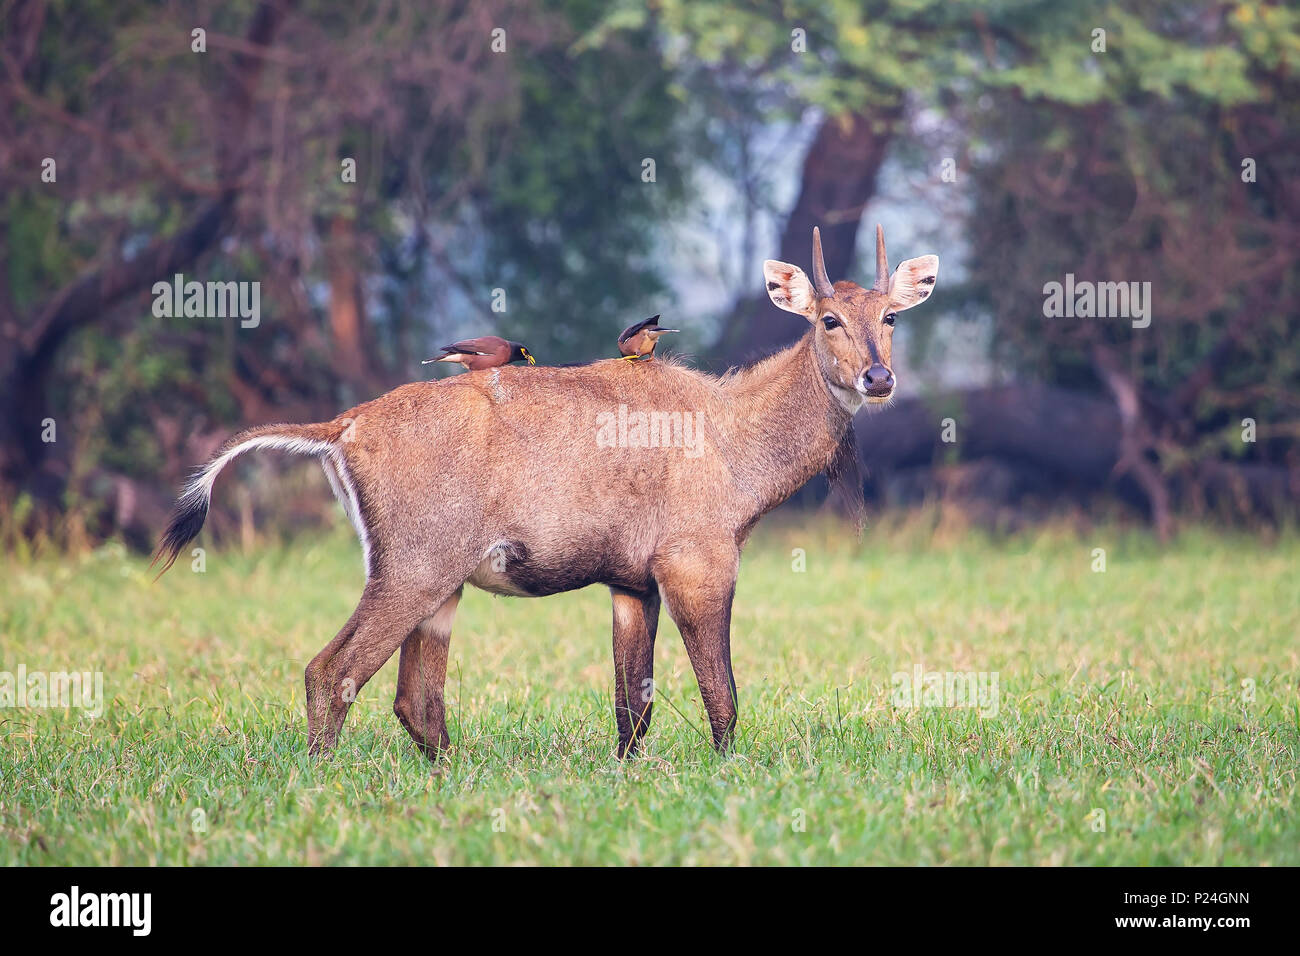 Male Nilgai with Brahminy mynas sitting on him in Keoladeo National Park, Bharatpur, India. Nilgai is the largest Asian antelope and is endemic to the Stock Photo